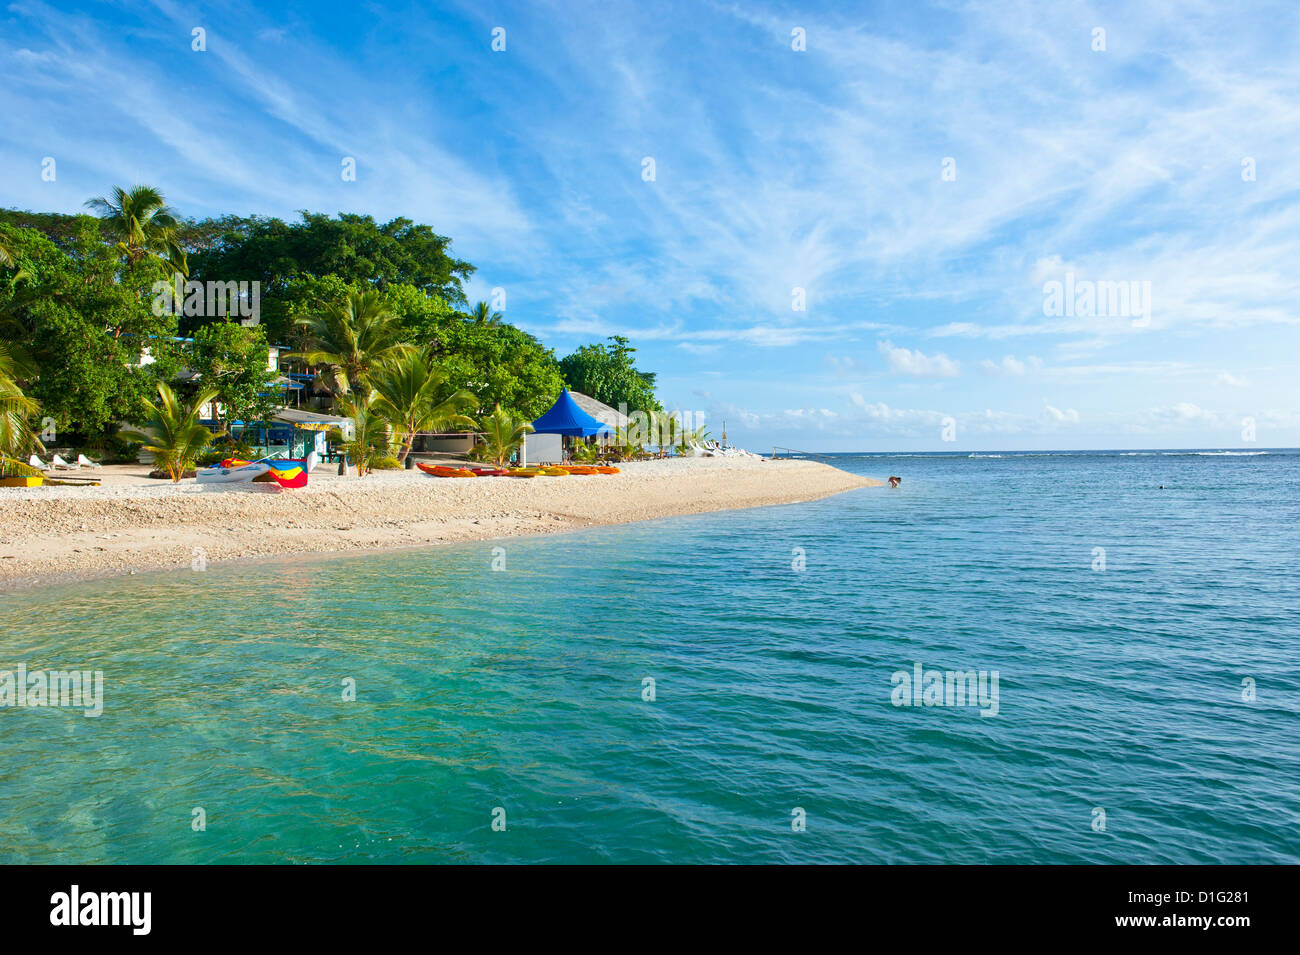 White sand beach at Hideaway Island near Port Vila, Island of Efate, Vanuatu, South Pacific, Pacific - Stock Image